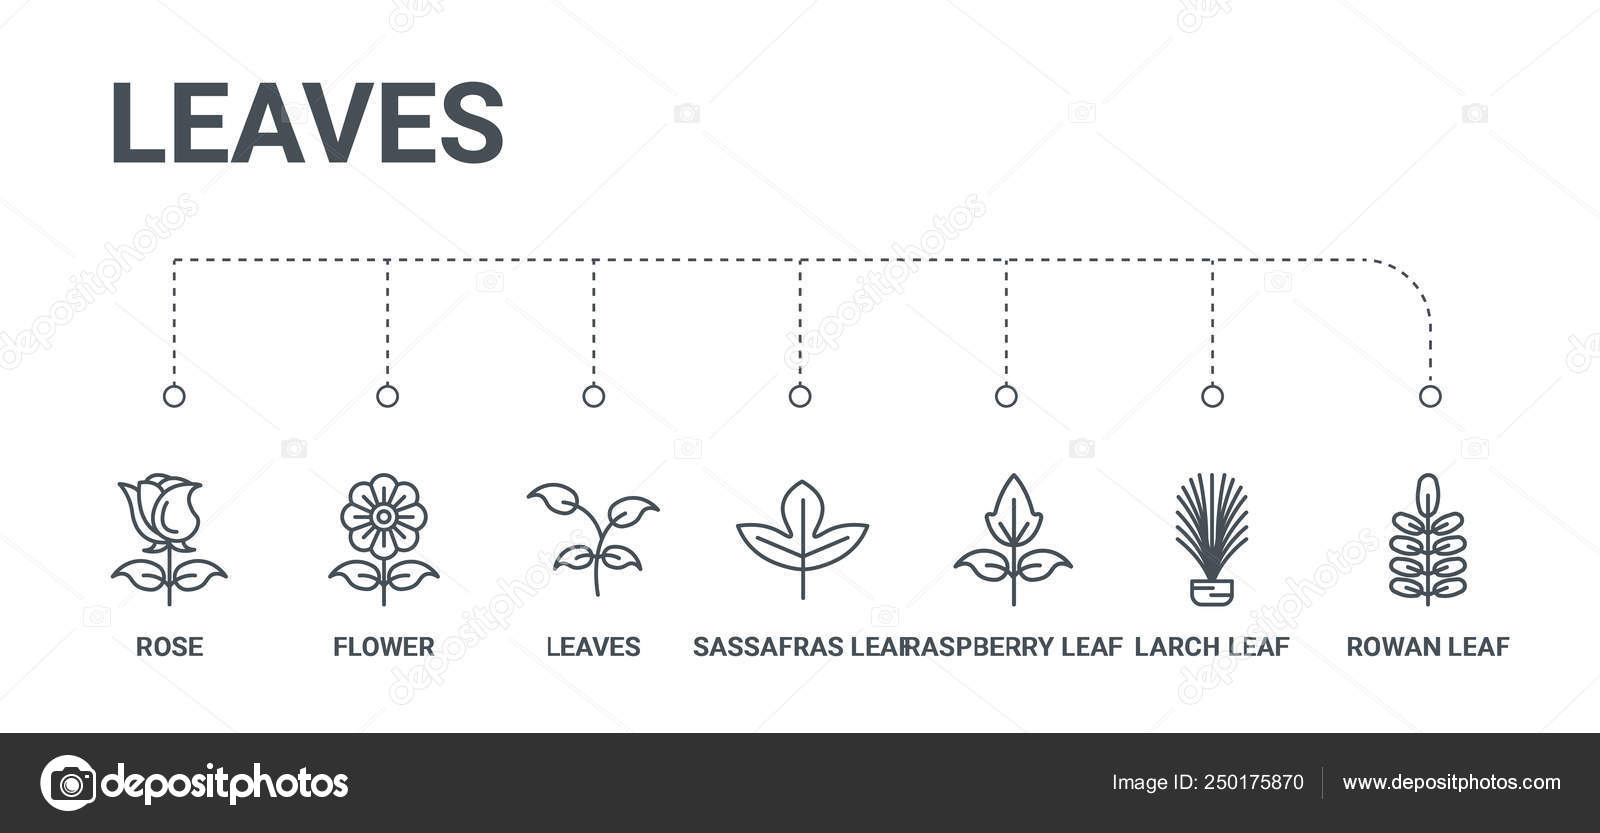 hight resolution of simple set of 7 line icons such as rowan leaf larch leaf raspberry leaf sassafras leaves flower rose from leaves concept on white background vector